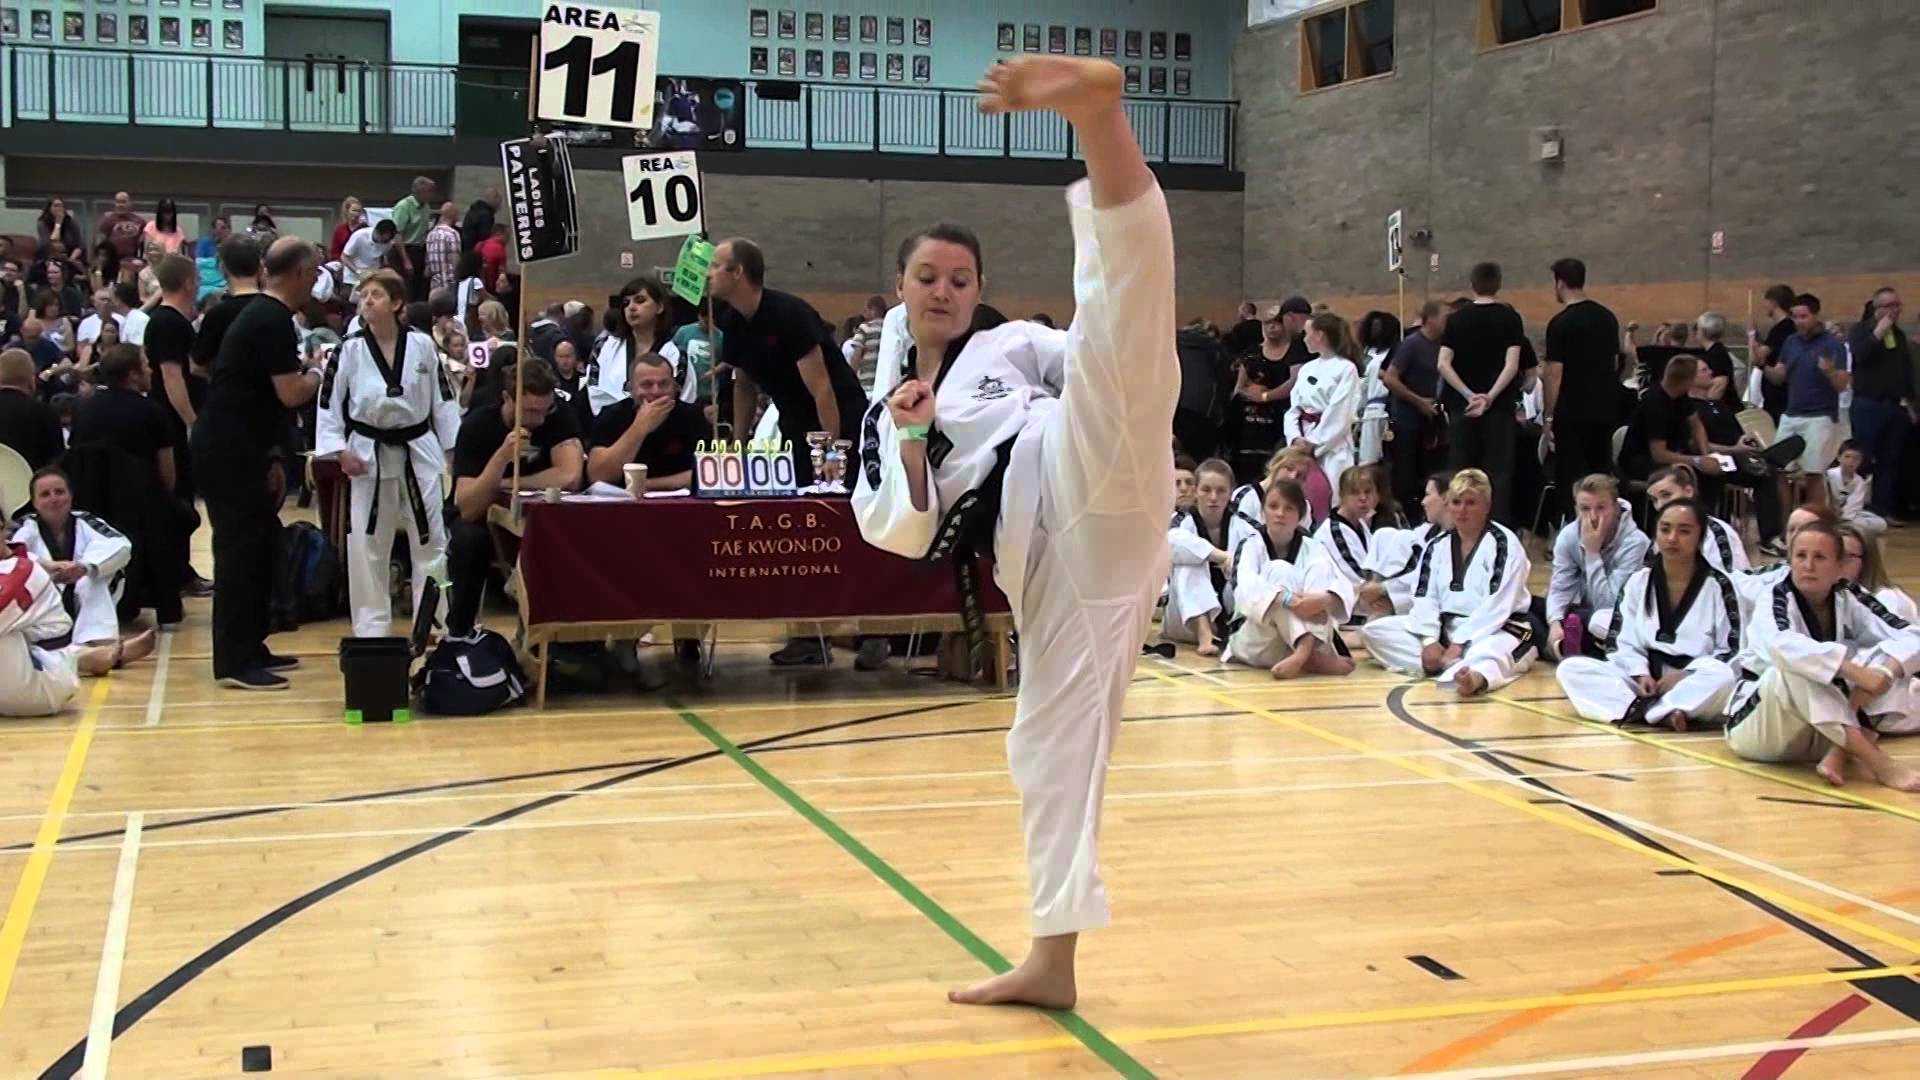 Britain's reigning world champion Amy Truesdale has also entered the one-day event in Plovdiv ©YouTube